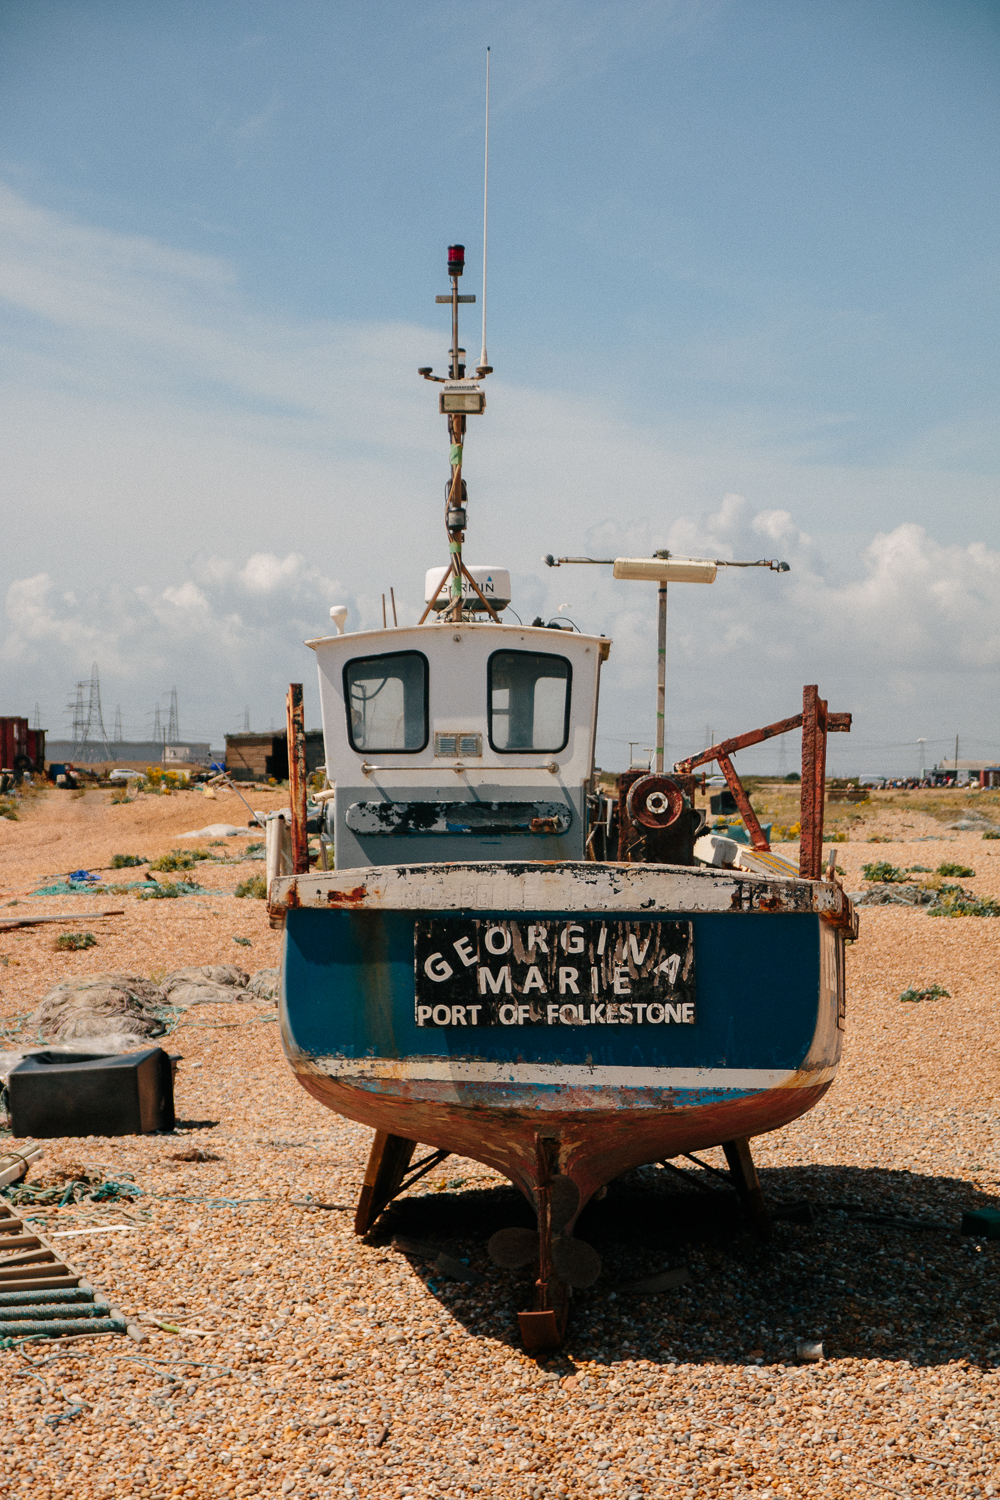 Old Abandoned Fishing Boat in Dungeness Nature Reserve in Kent